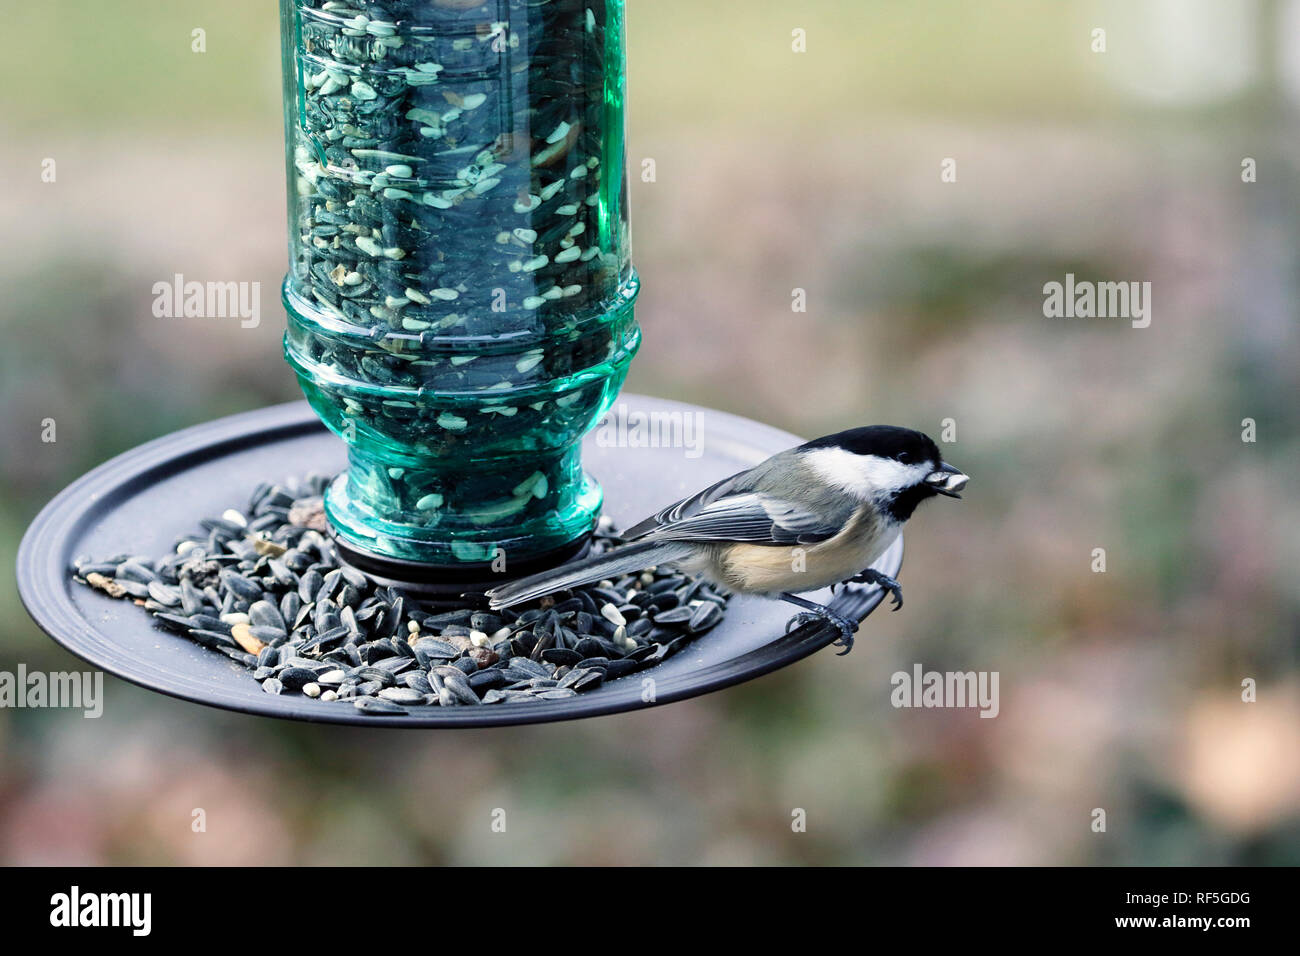 Black-capped Chickadee, Poecile atricapillus, eating at a bird feeder - Stock Image